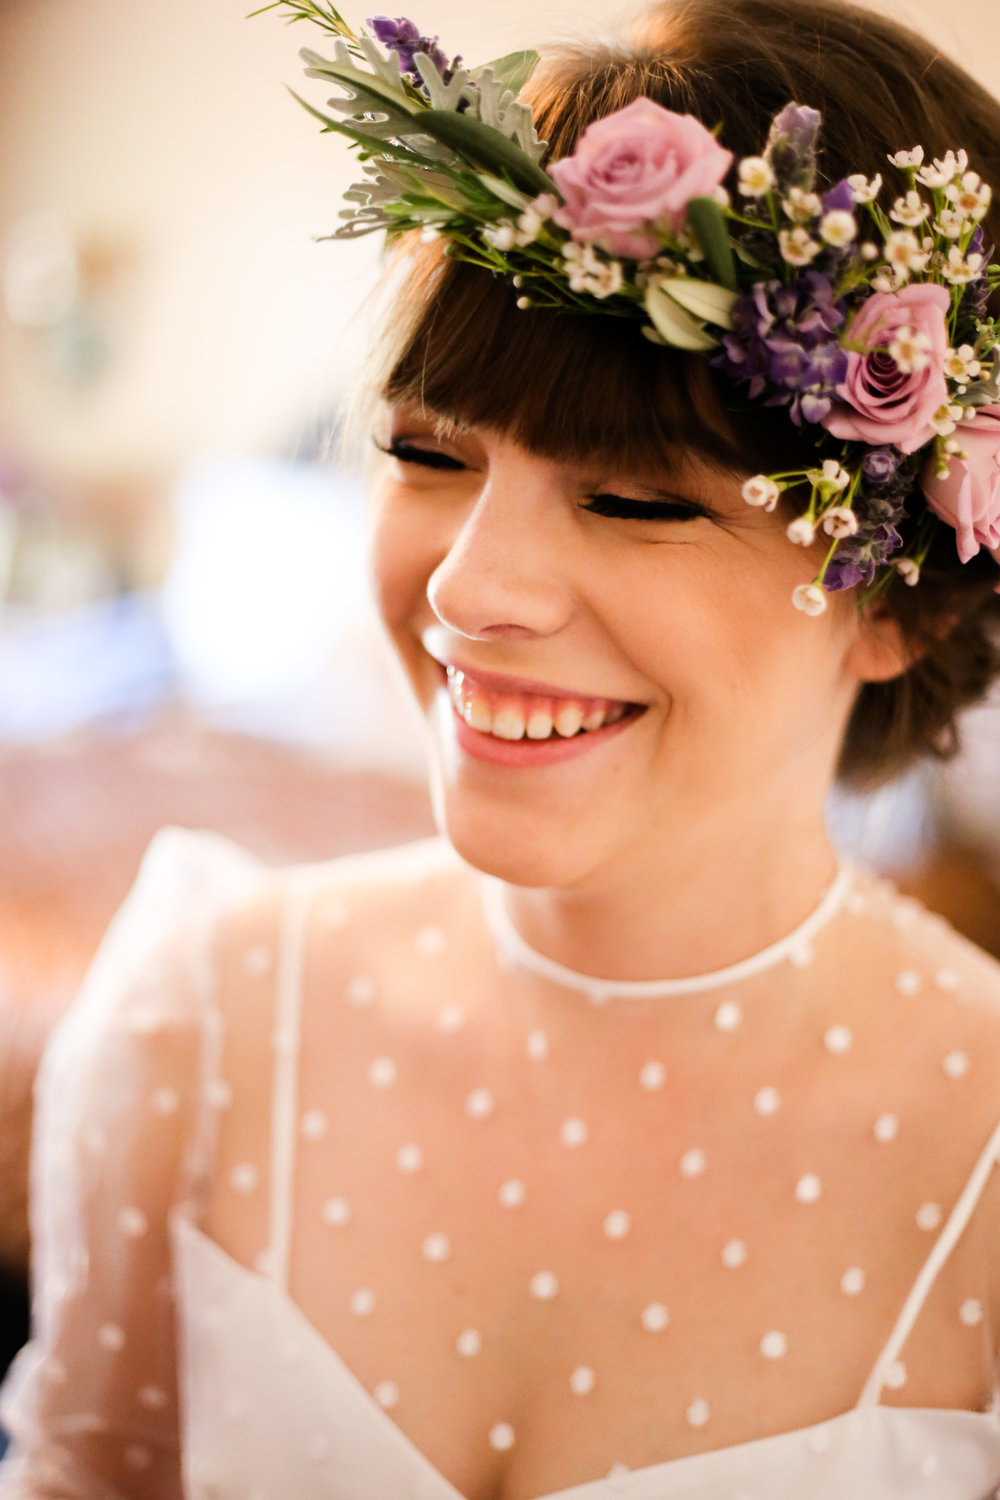 alexandra-rice-photography-monterey-wedding-bride-getting-ready-flower-crown.jpg